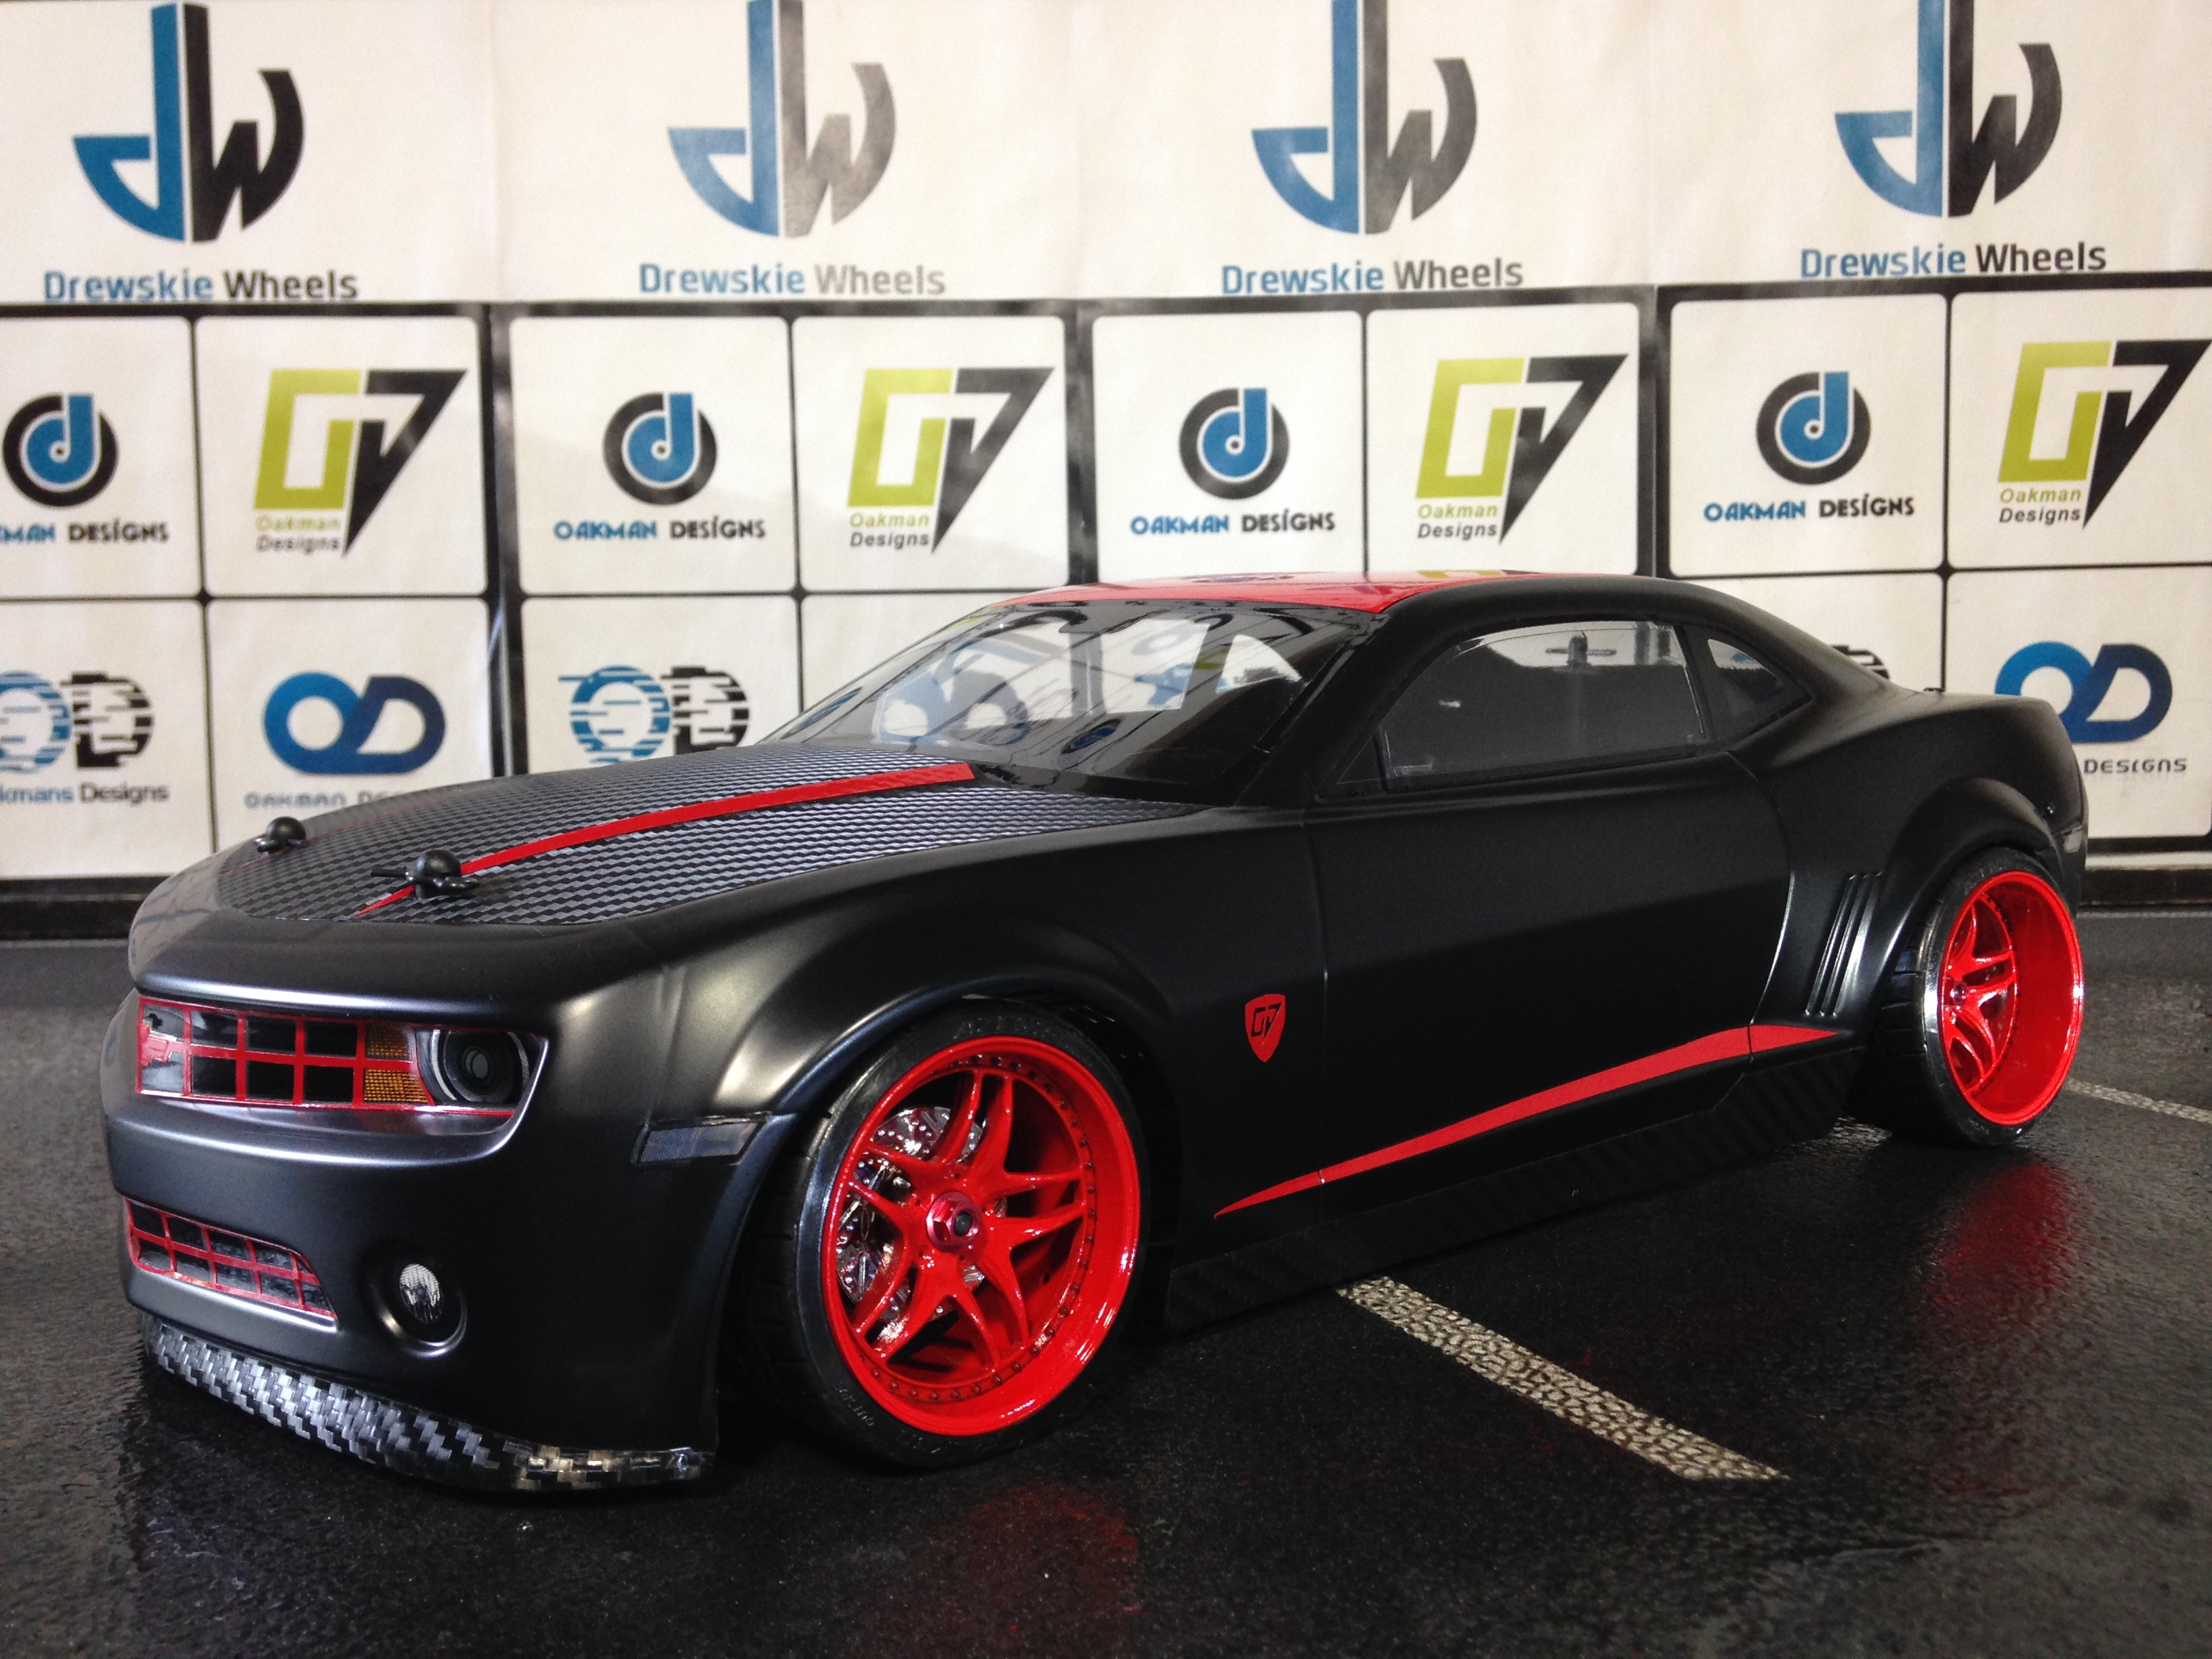 Best Custom Rtr Car Best Custom Rtr Drift Car Oak Man Designs